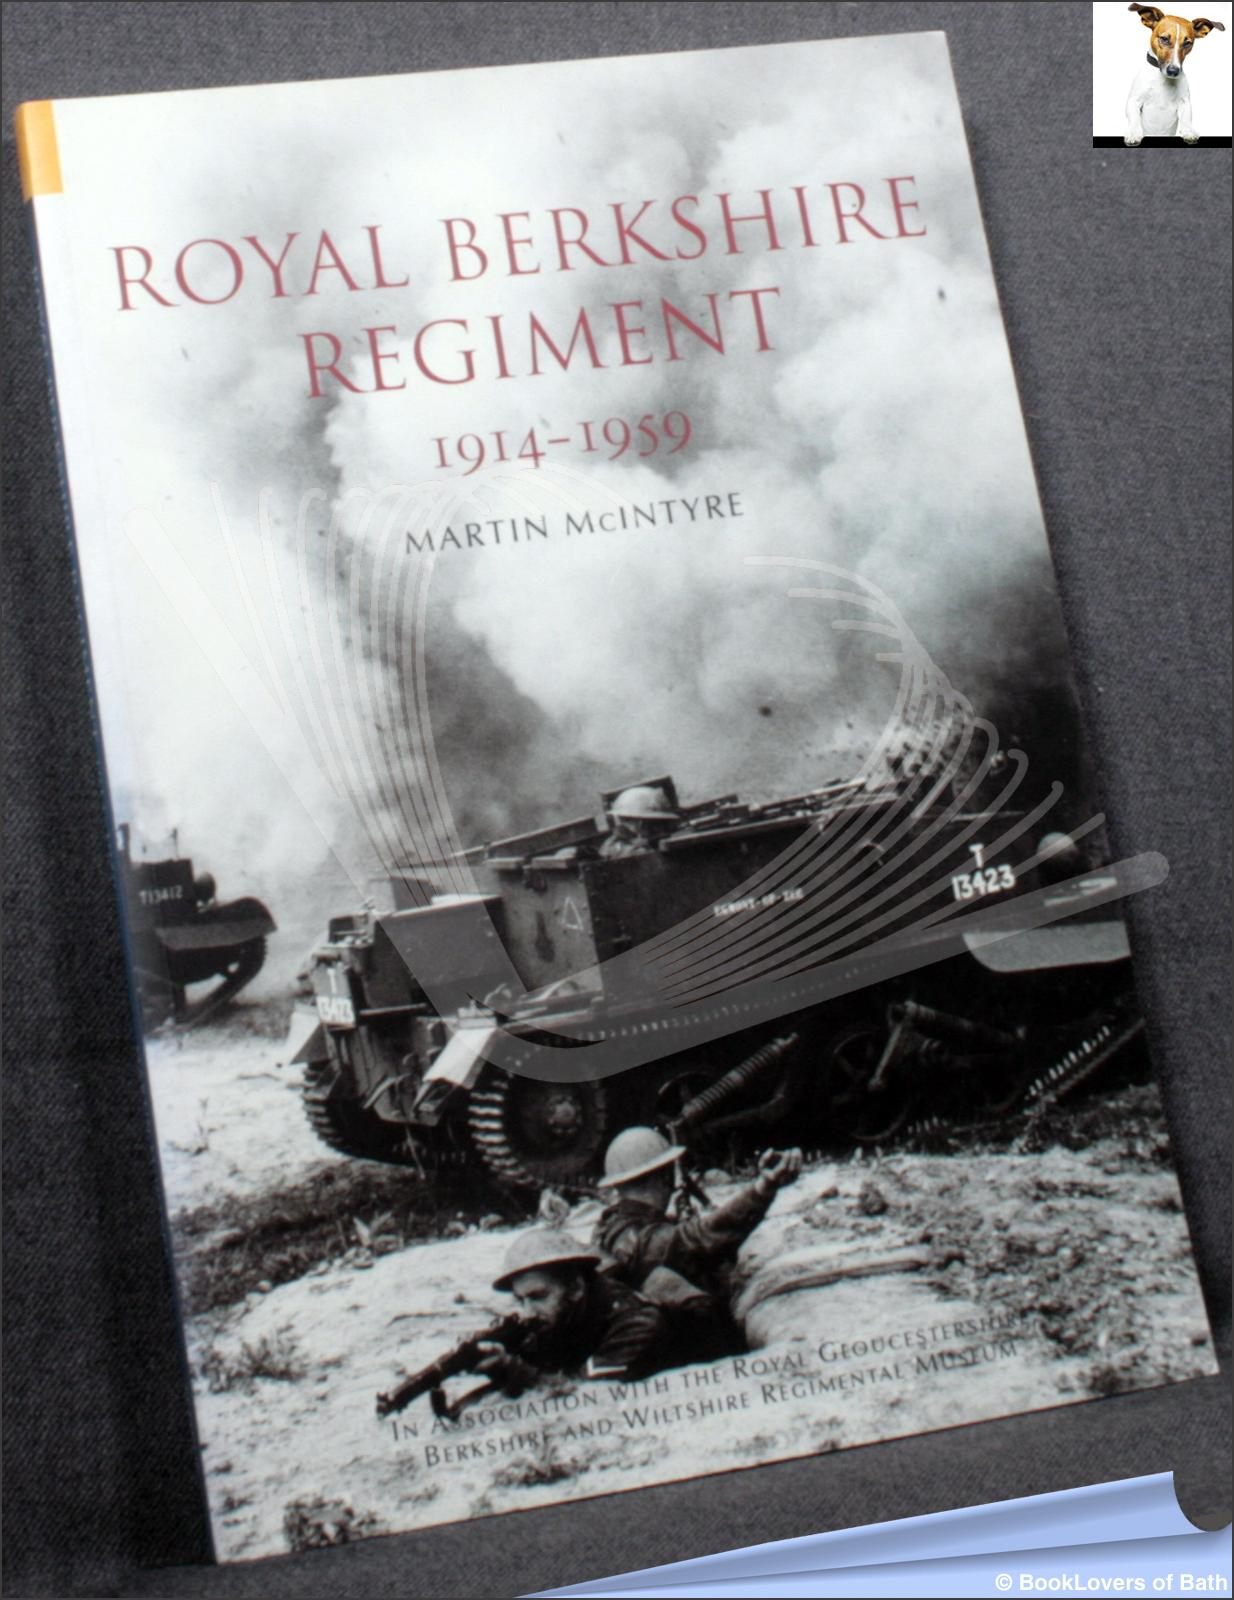 The Royal Berkshire Regiment 1914-1959 - Martin McIntyre